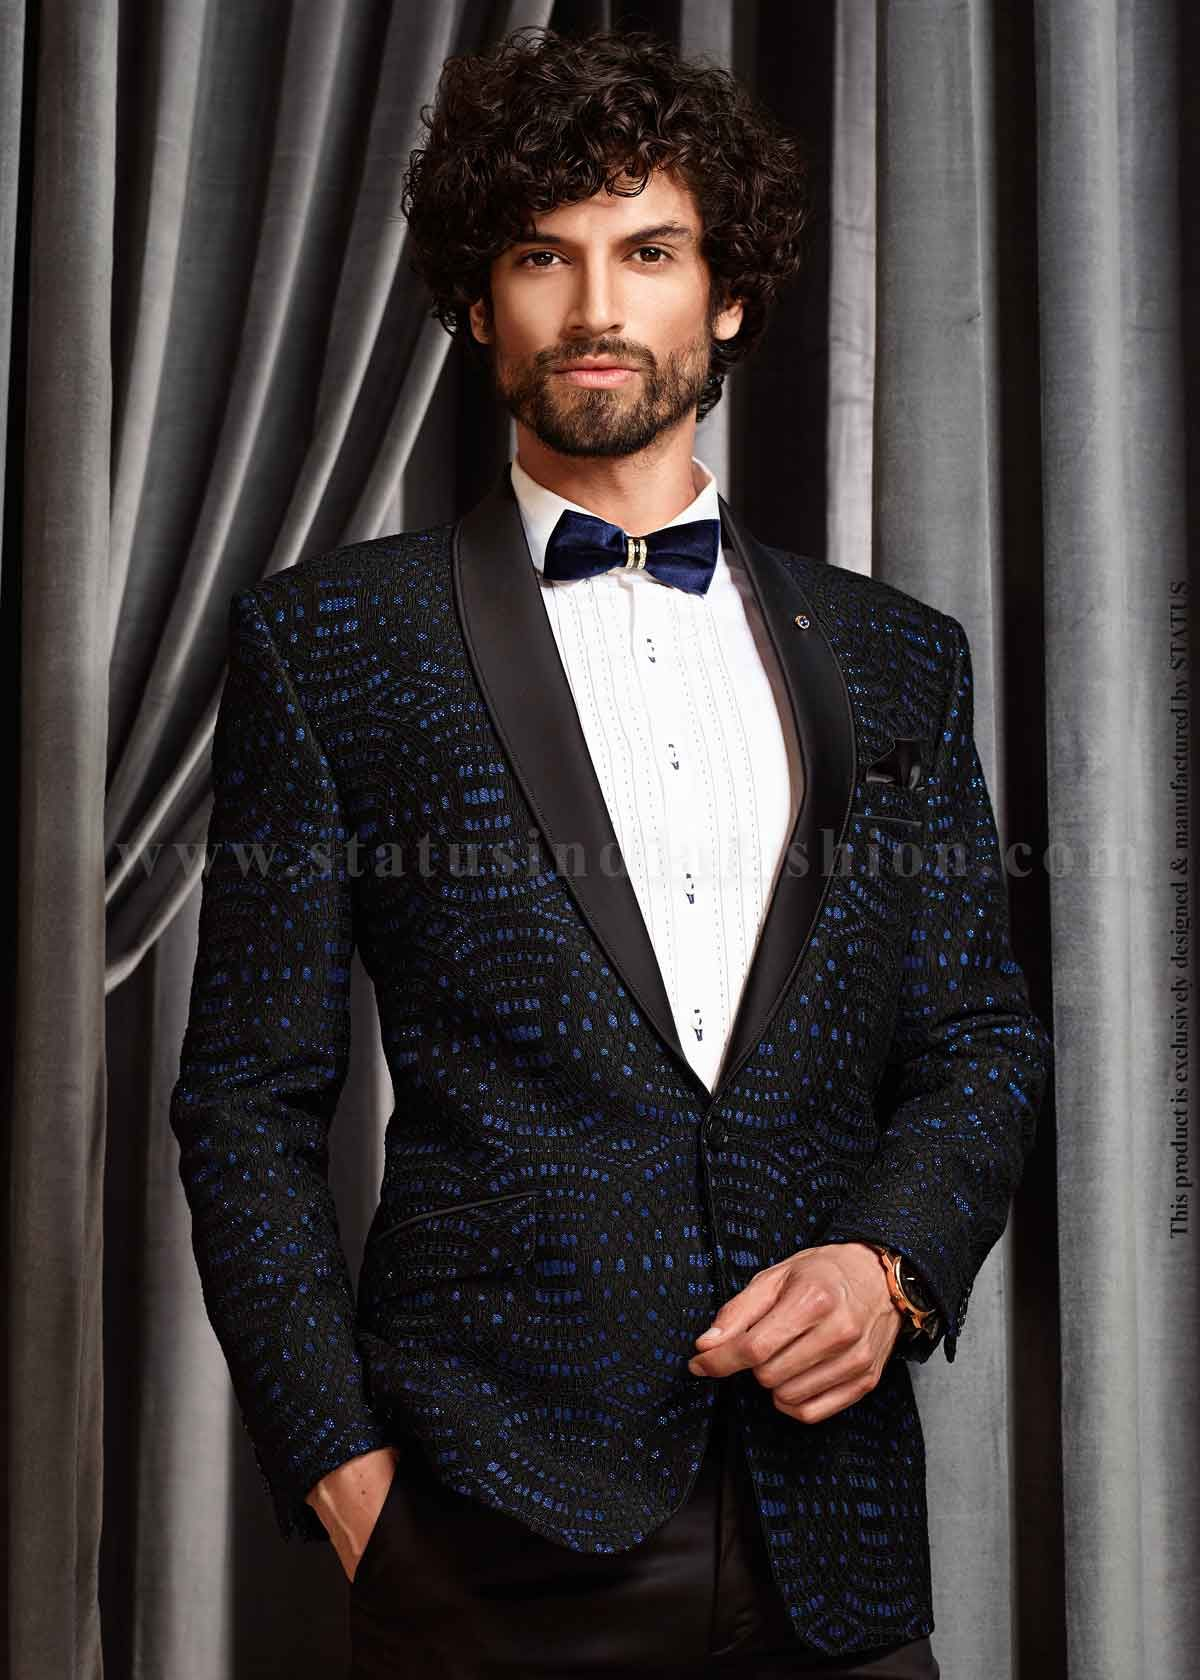 Mens Designer Suit Wedding Suit Groom Suits Blazer Suit Fashion Suit Mens Suit Mens Party Suit Marriage Suit Designer Suits For Men Tuxedo For Men Suits